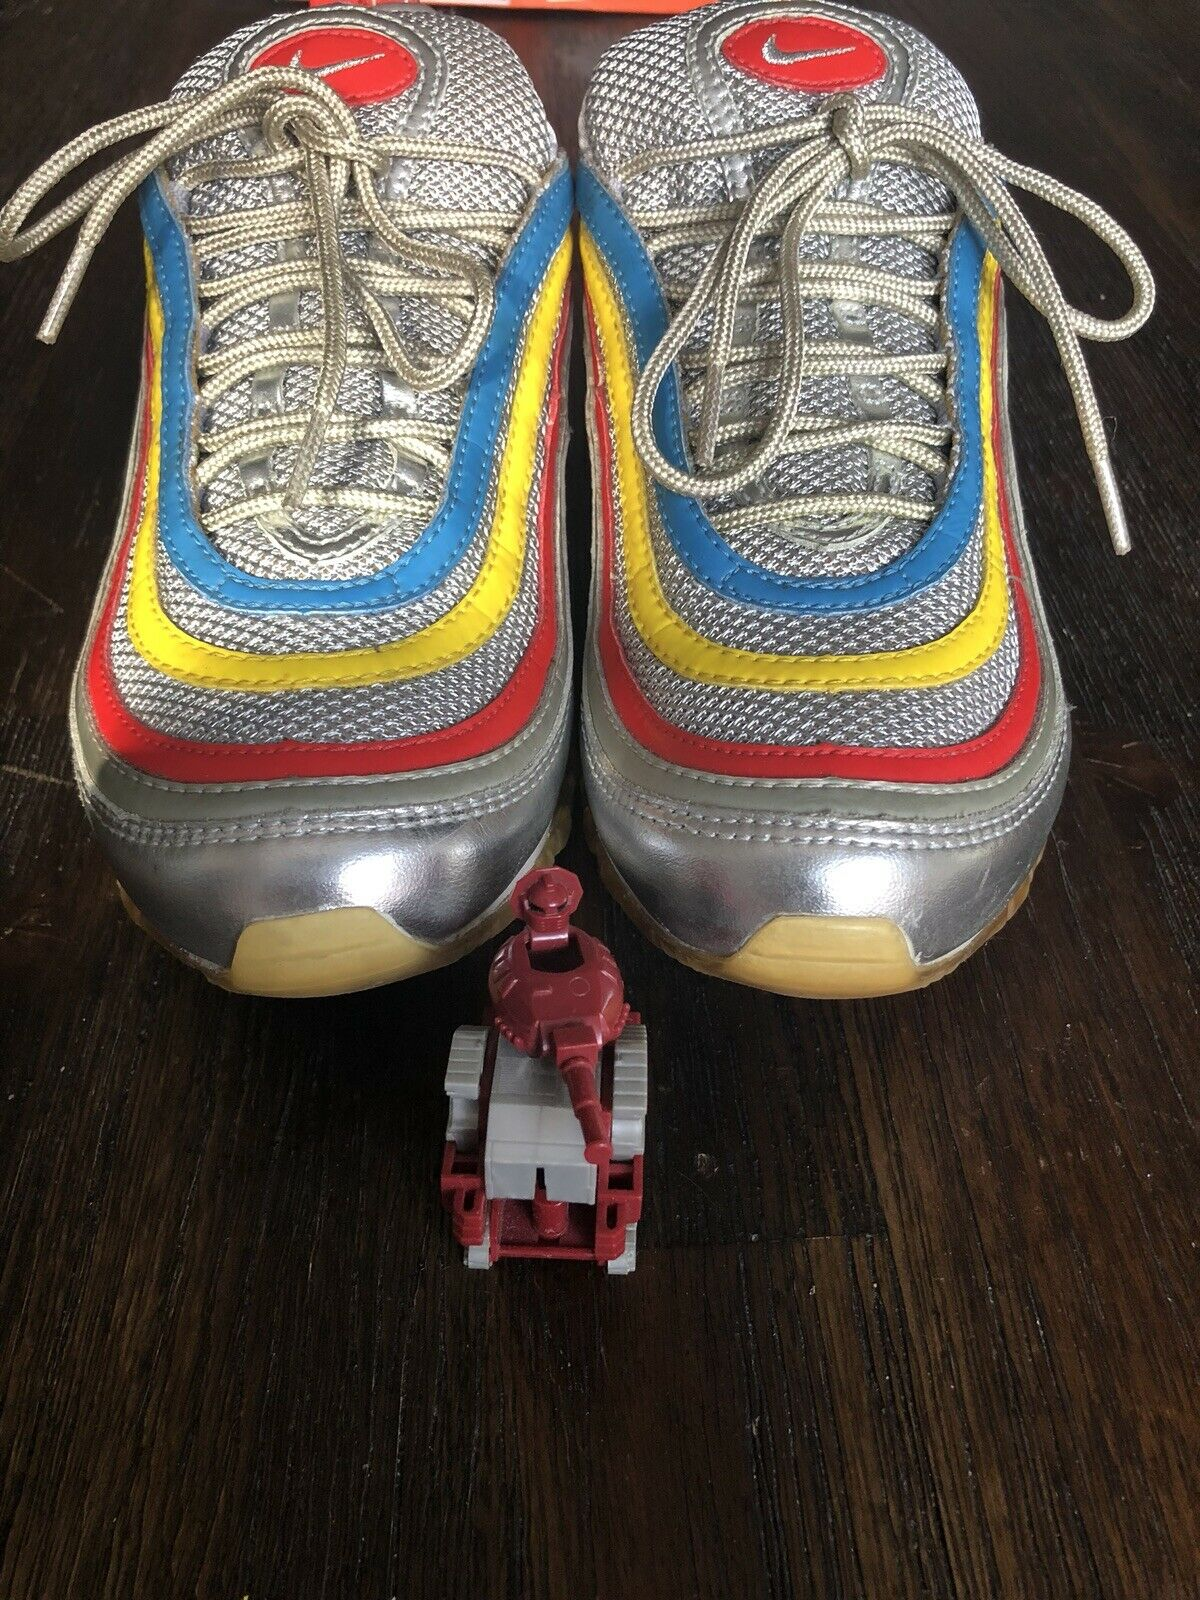 Nike Air Max 97 FINISHLINE 25th ANNIVERSARY Metallic argent Bullet Wotherspoon